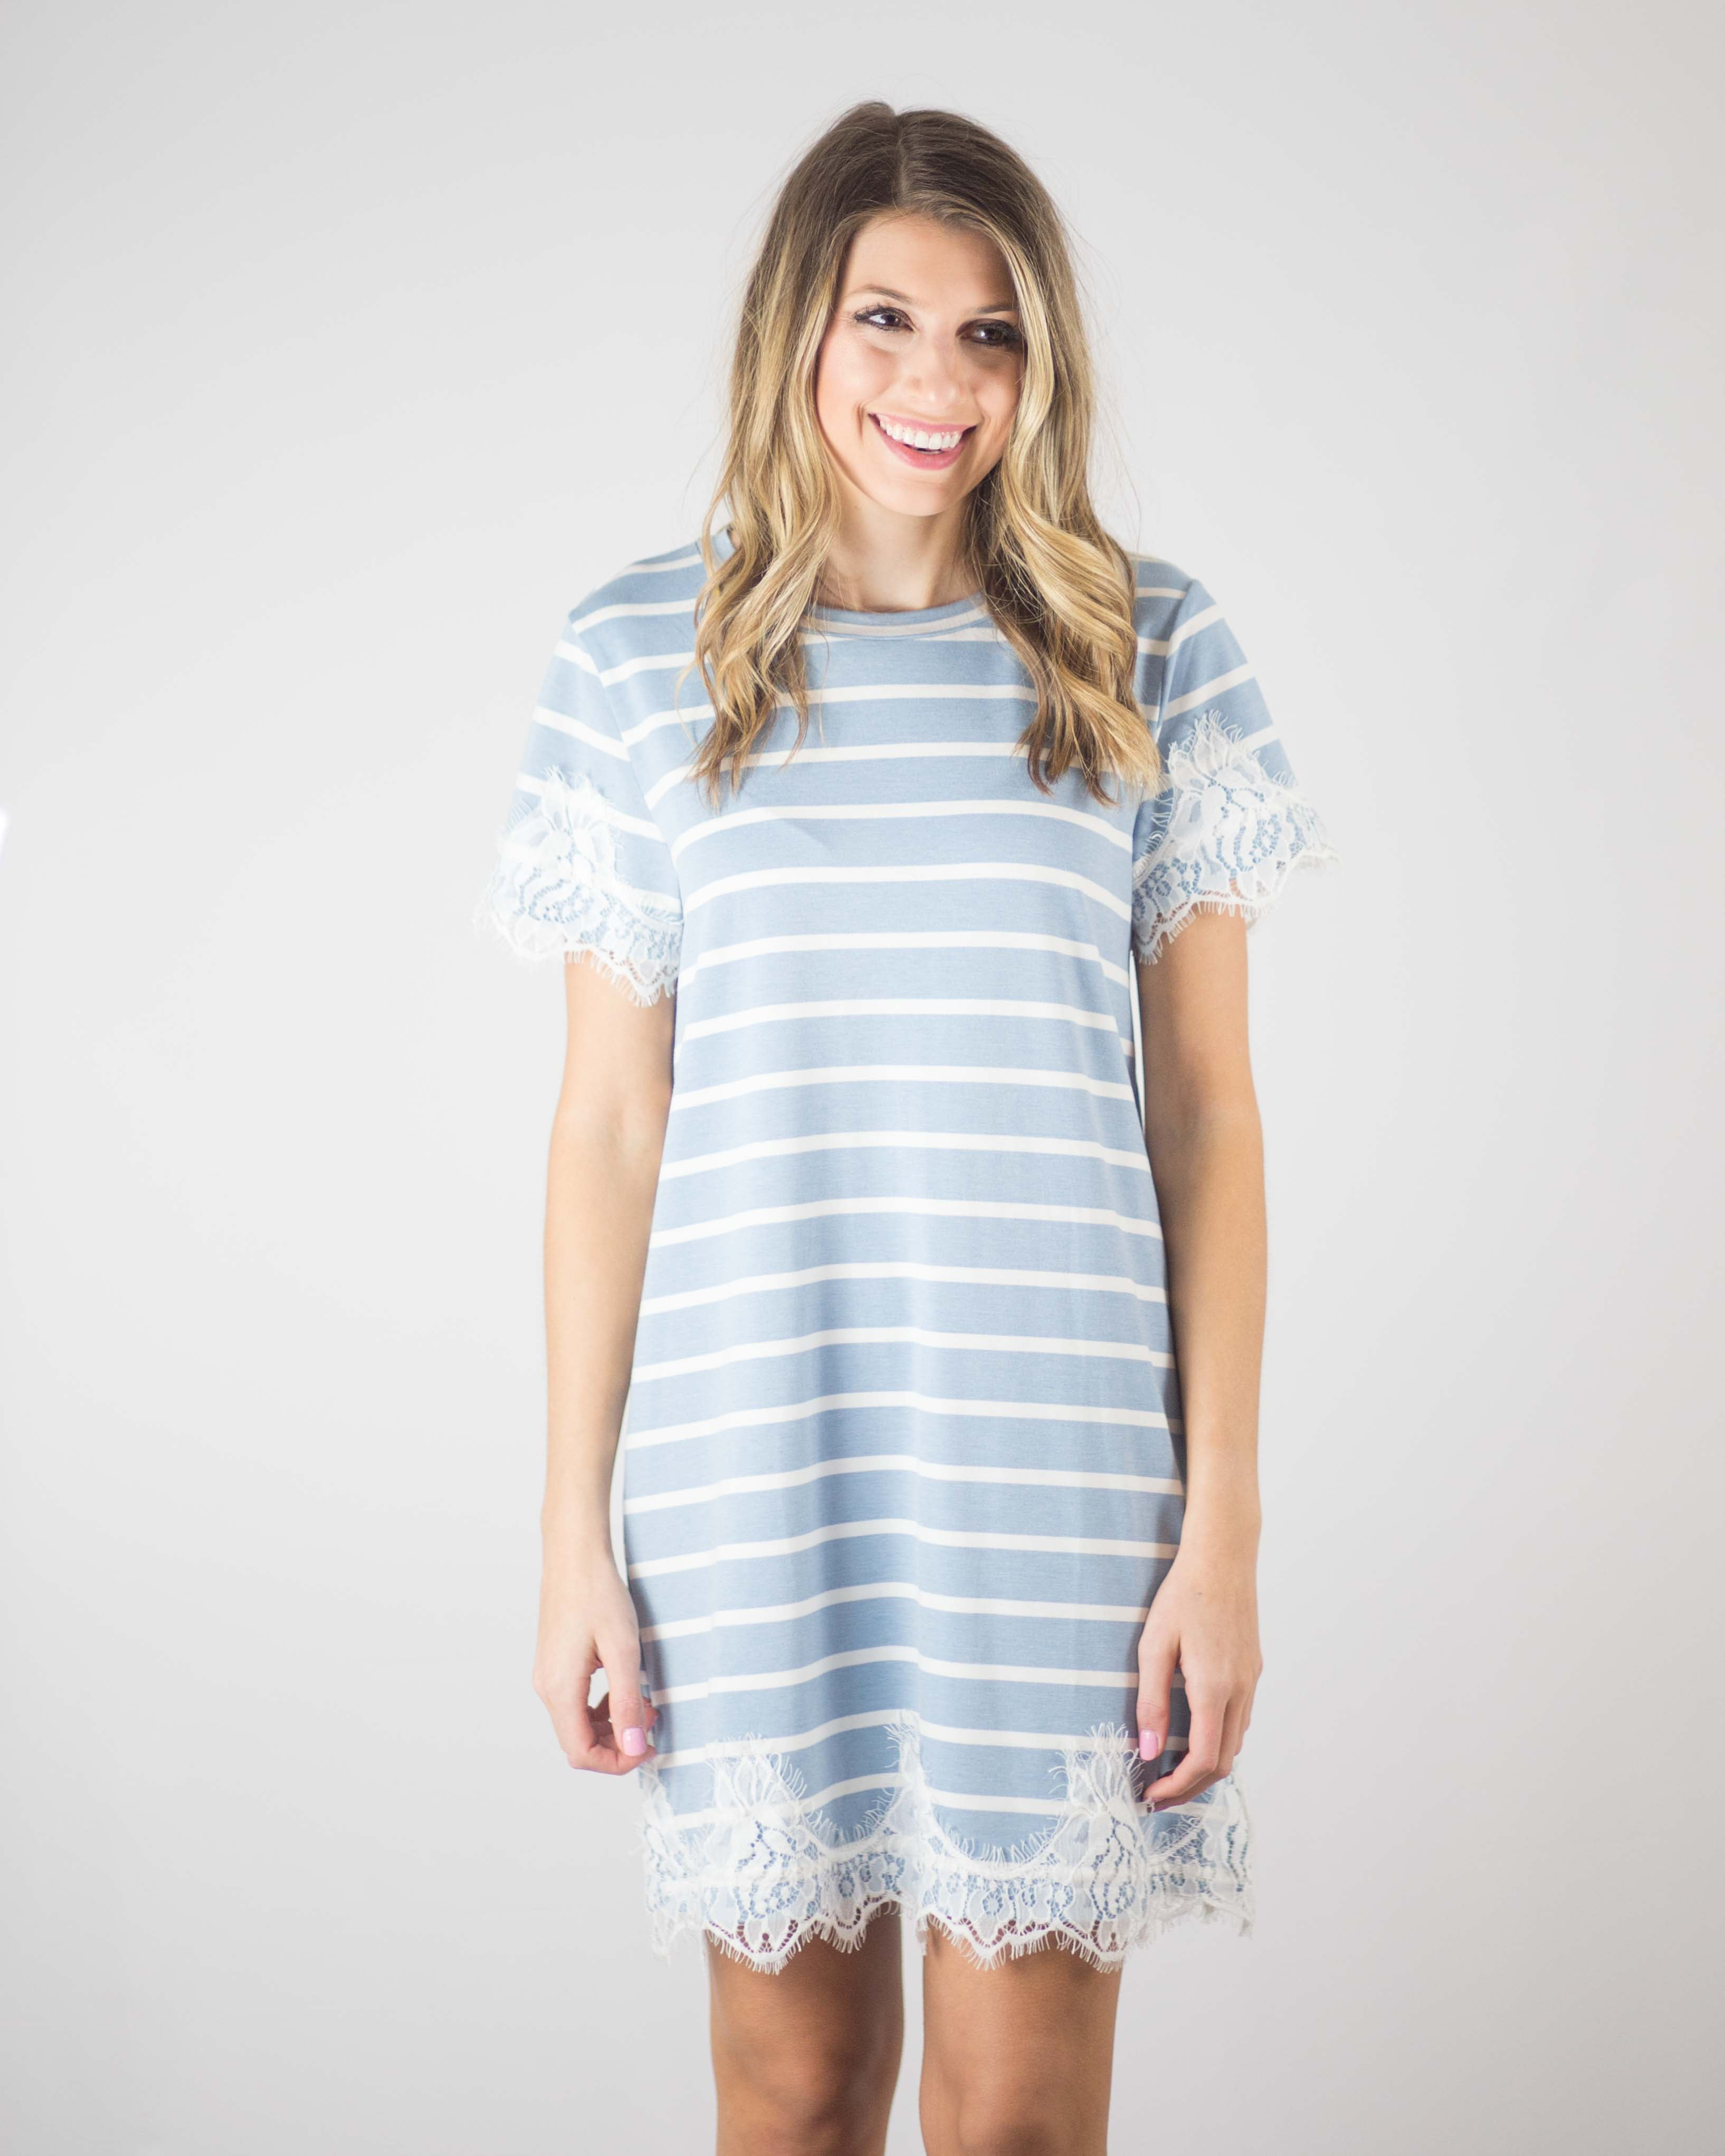 Evelyn Lace Trim Dress